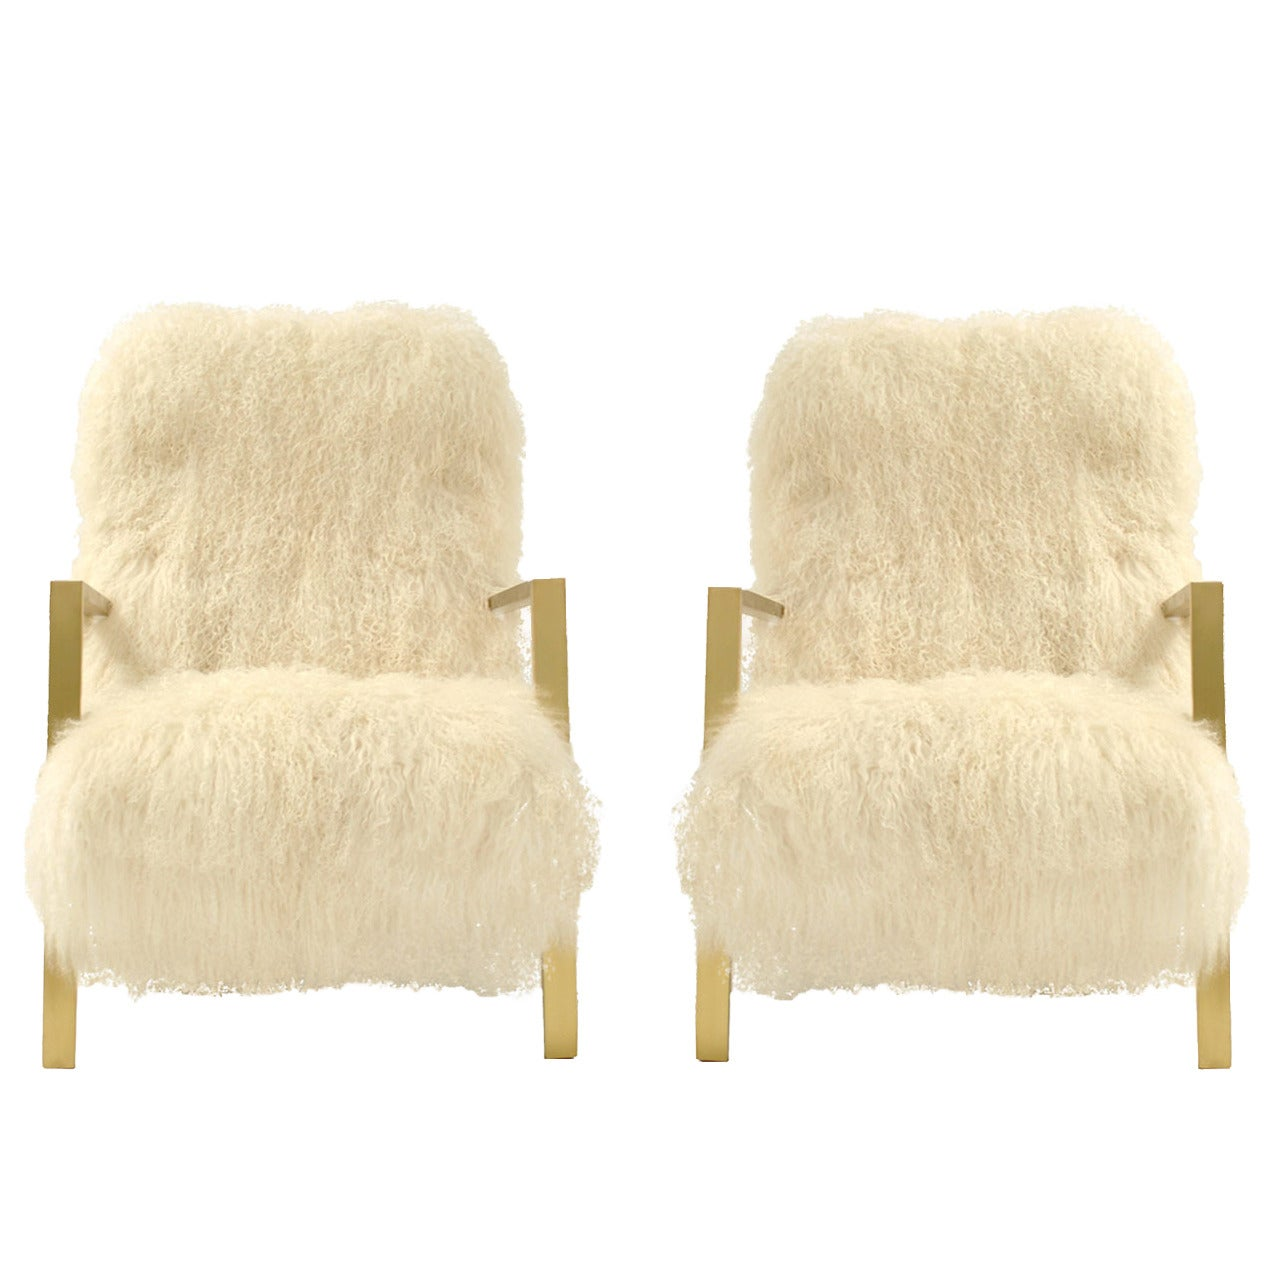 Mongolian Goat Armchairs For Sale